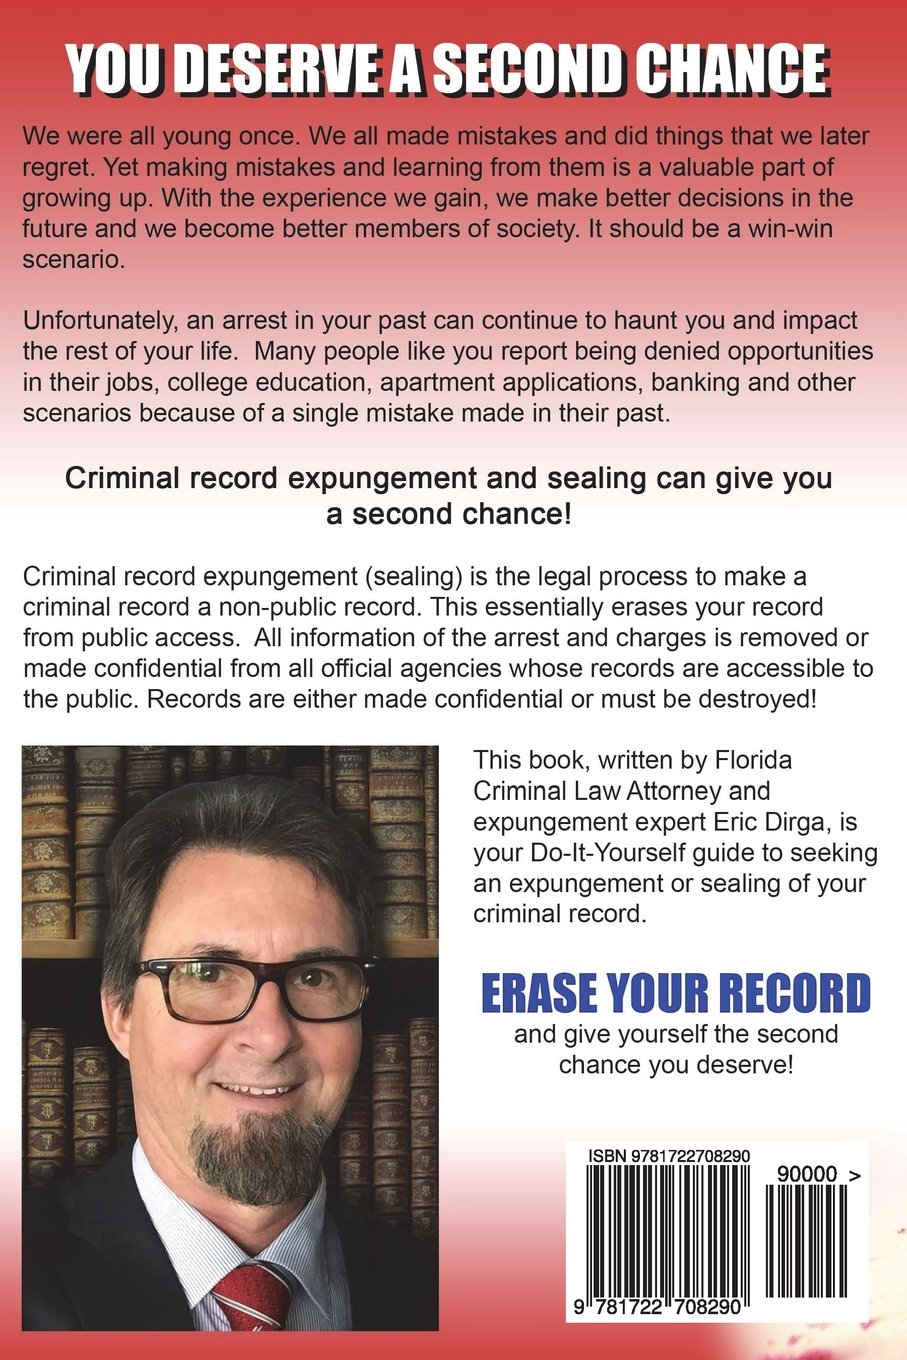 Erase your record the do it yourself guide to seal or expunge your erase your record the do it yourself guide to seal or expunge your florida criminal record without a lawyer eric dirga 9781722708290 amazon books solutioingenieria Images